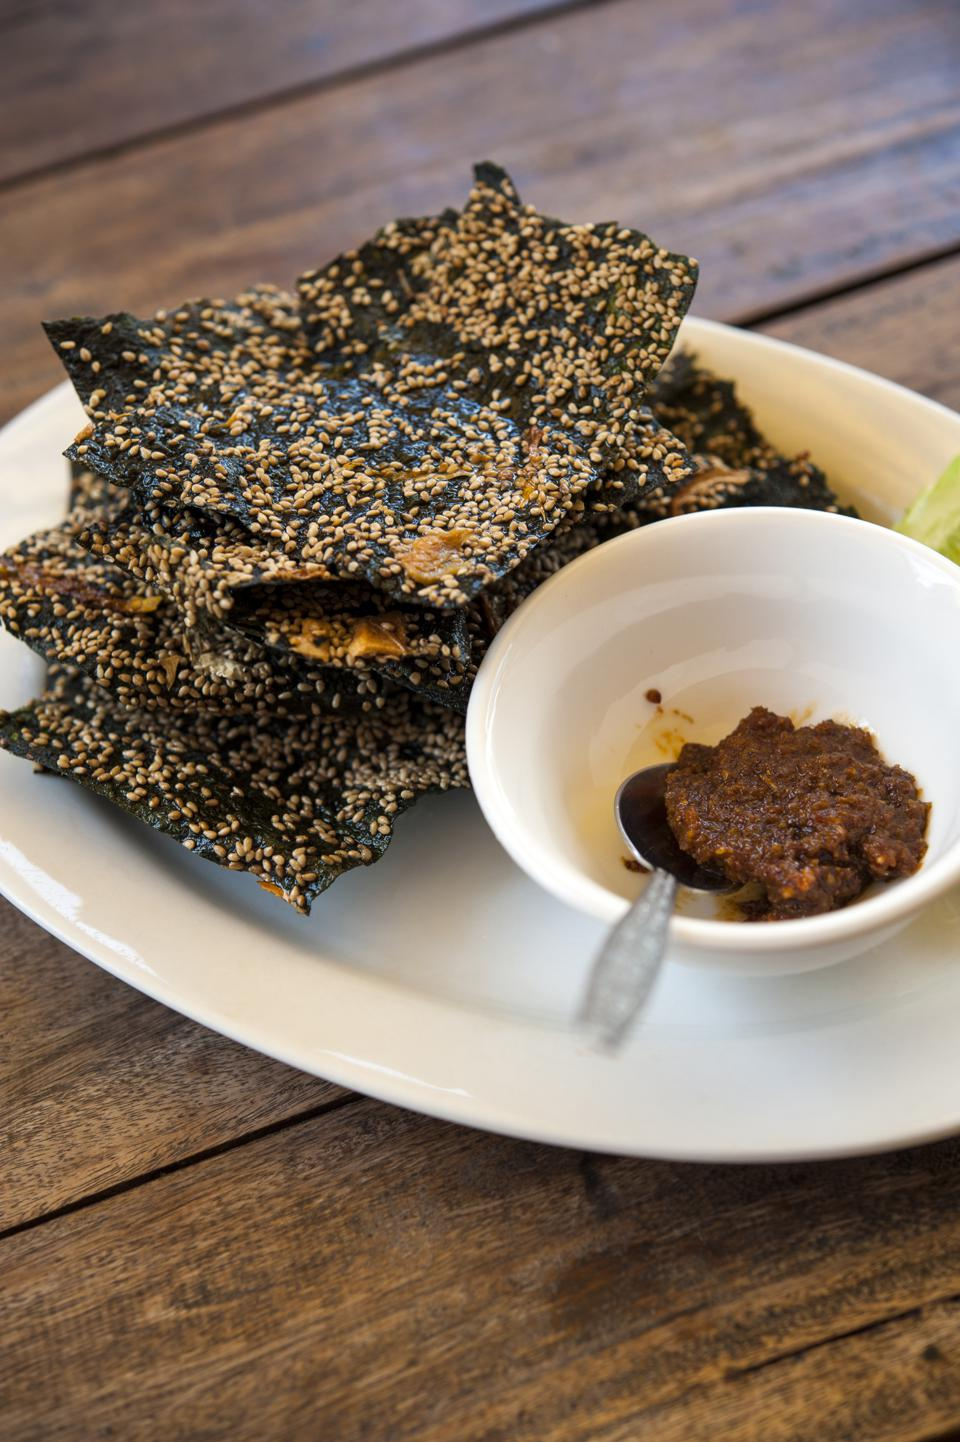 A plate of crispy river weed ″crackers″ with a bowl of jeow bong chili paste